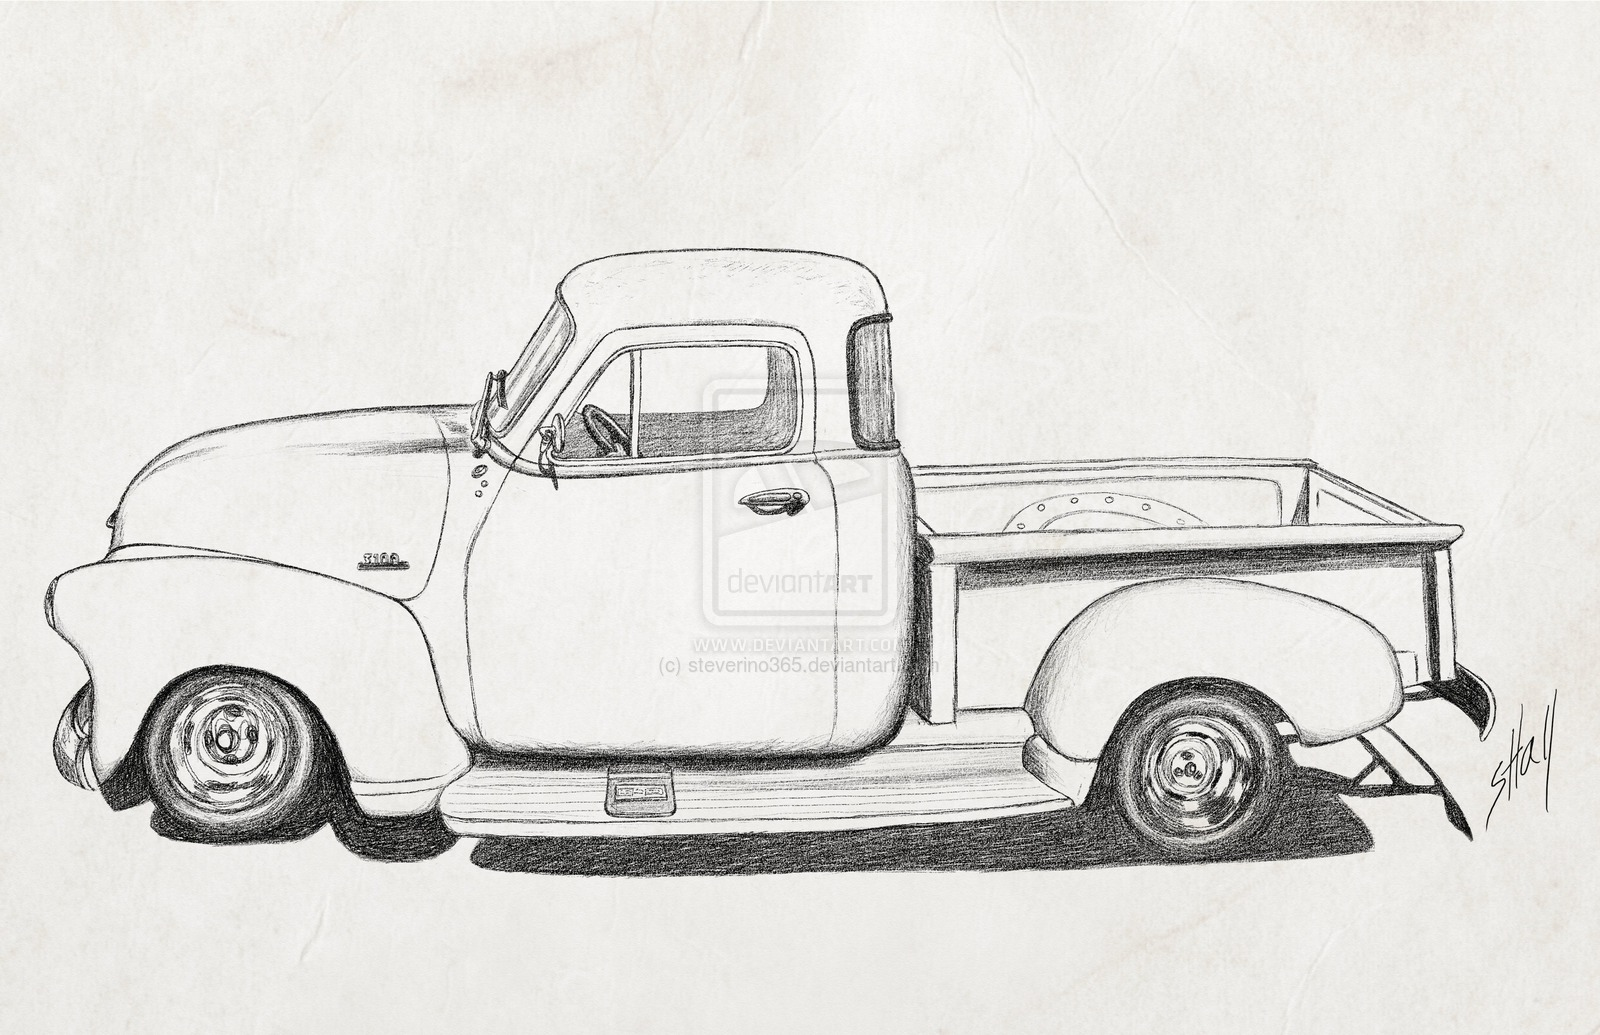 Chevrolet clipart antique truck Search cartoon Search truck